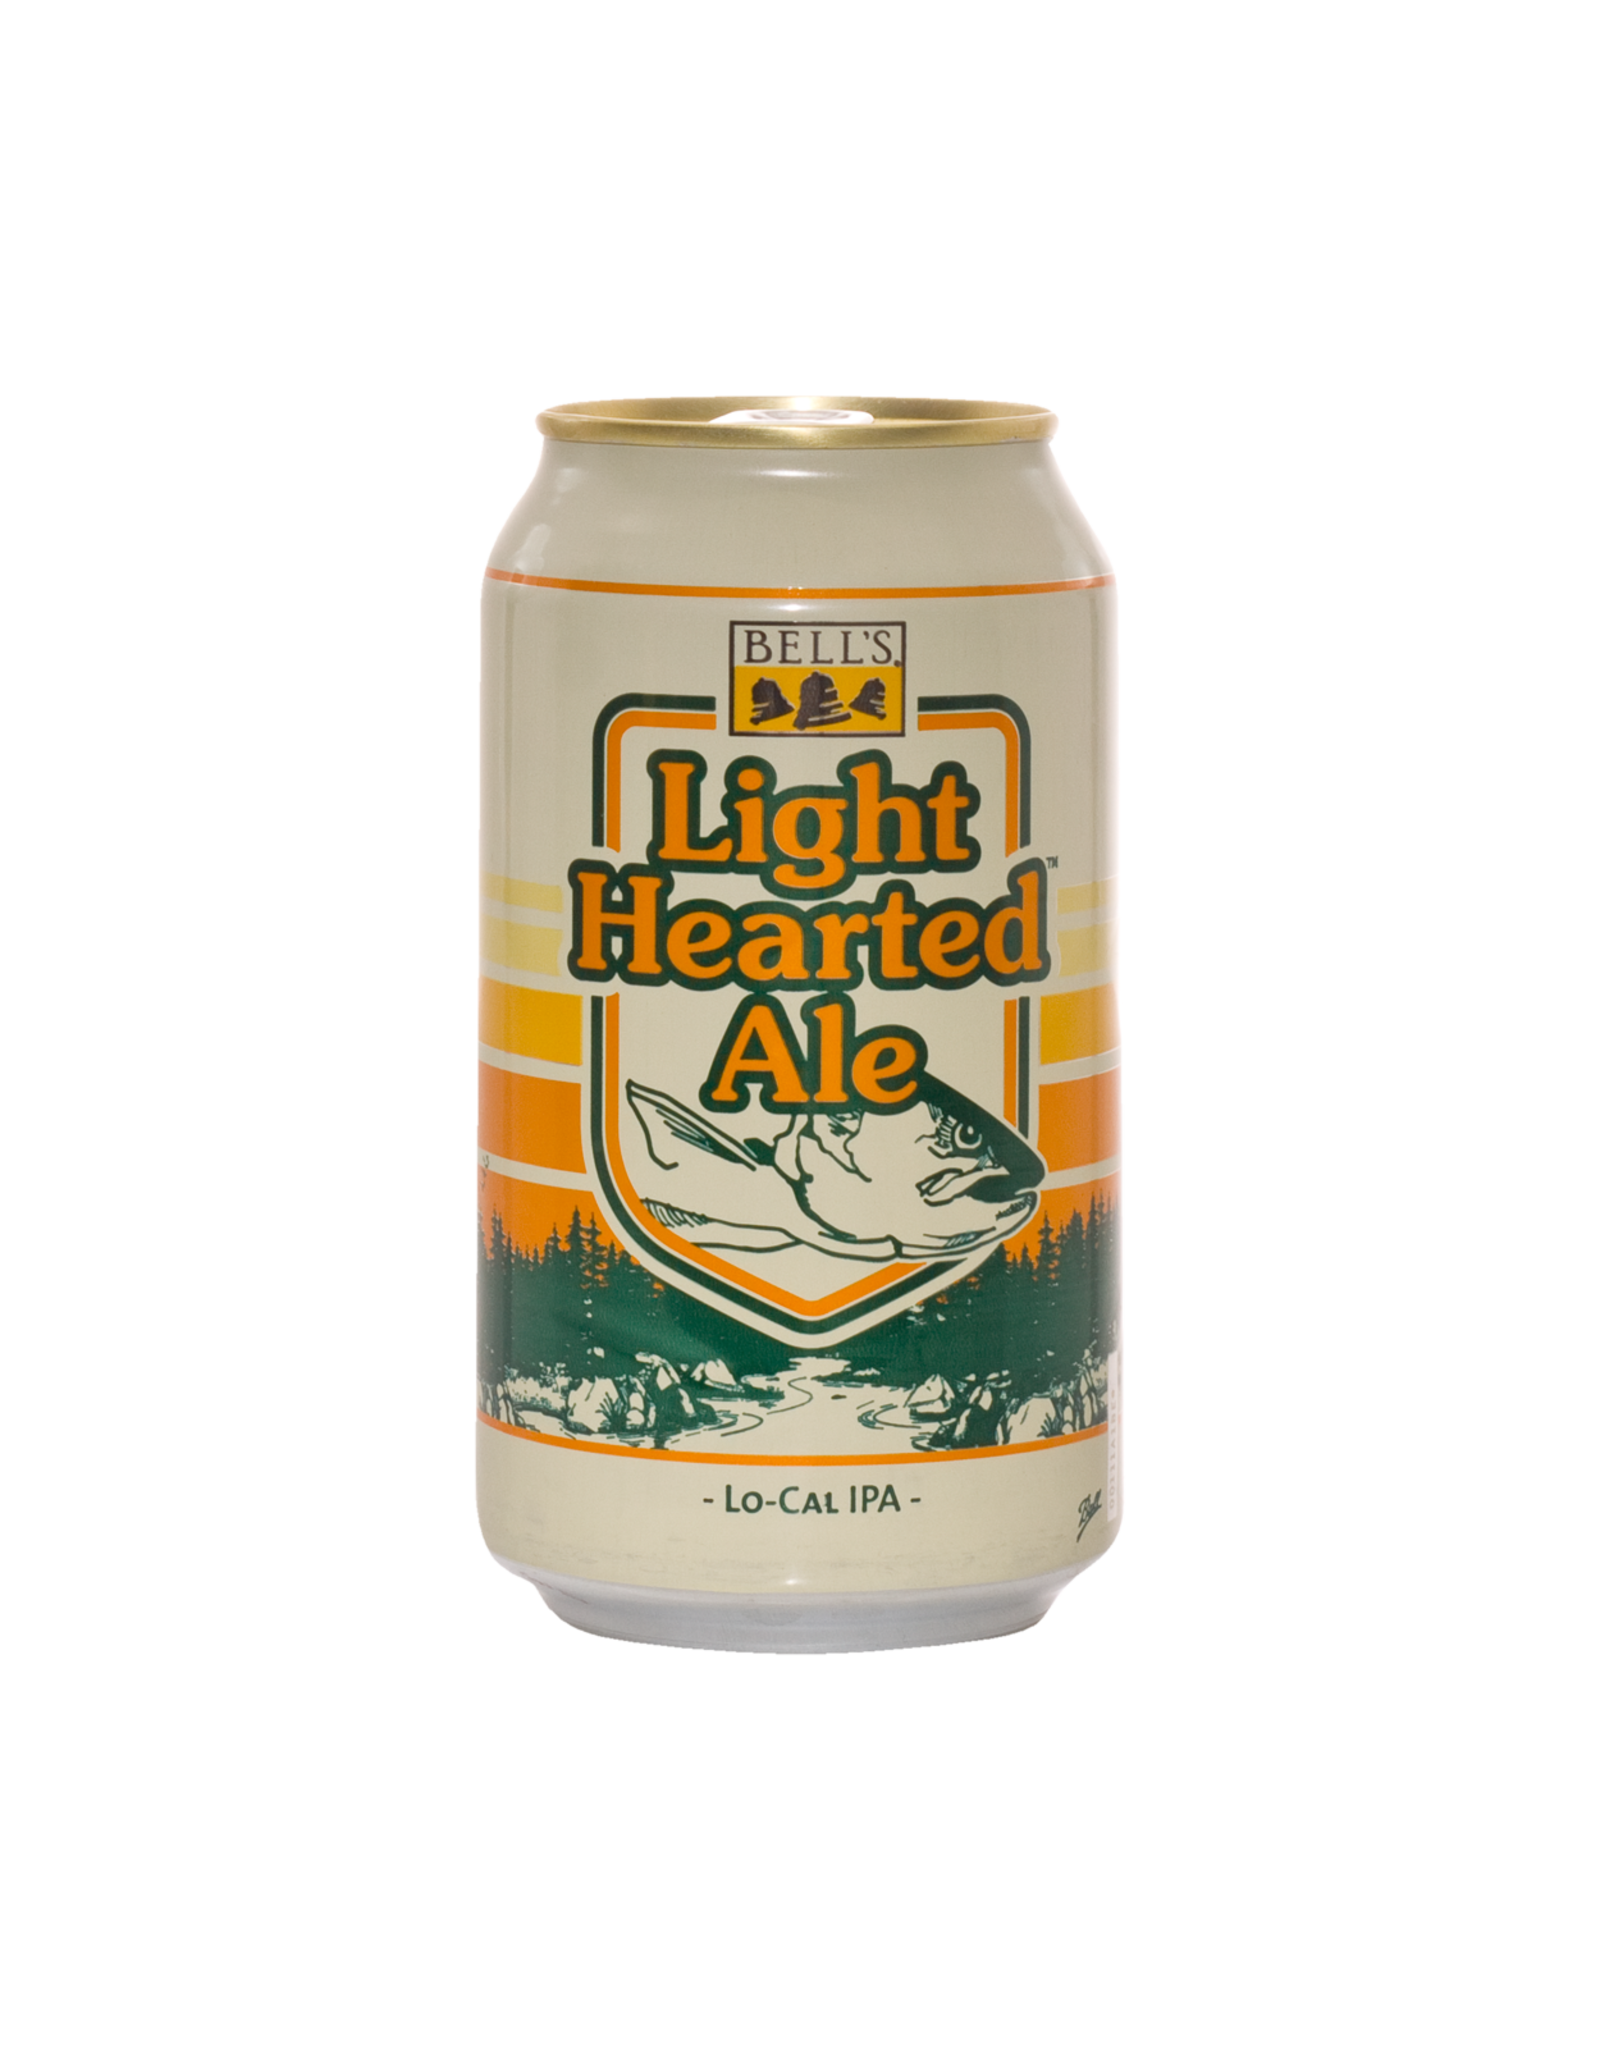 Bell's Bell's Light Hearted Ale Lo-Cal IPA 12 pack